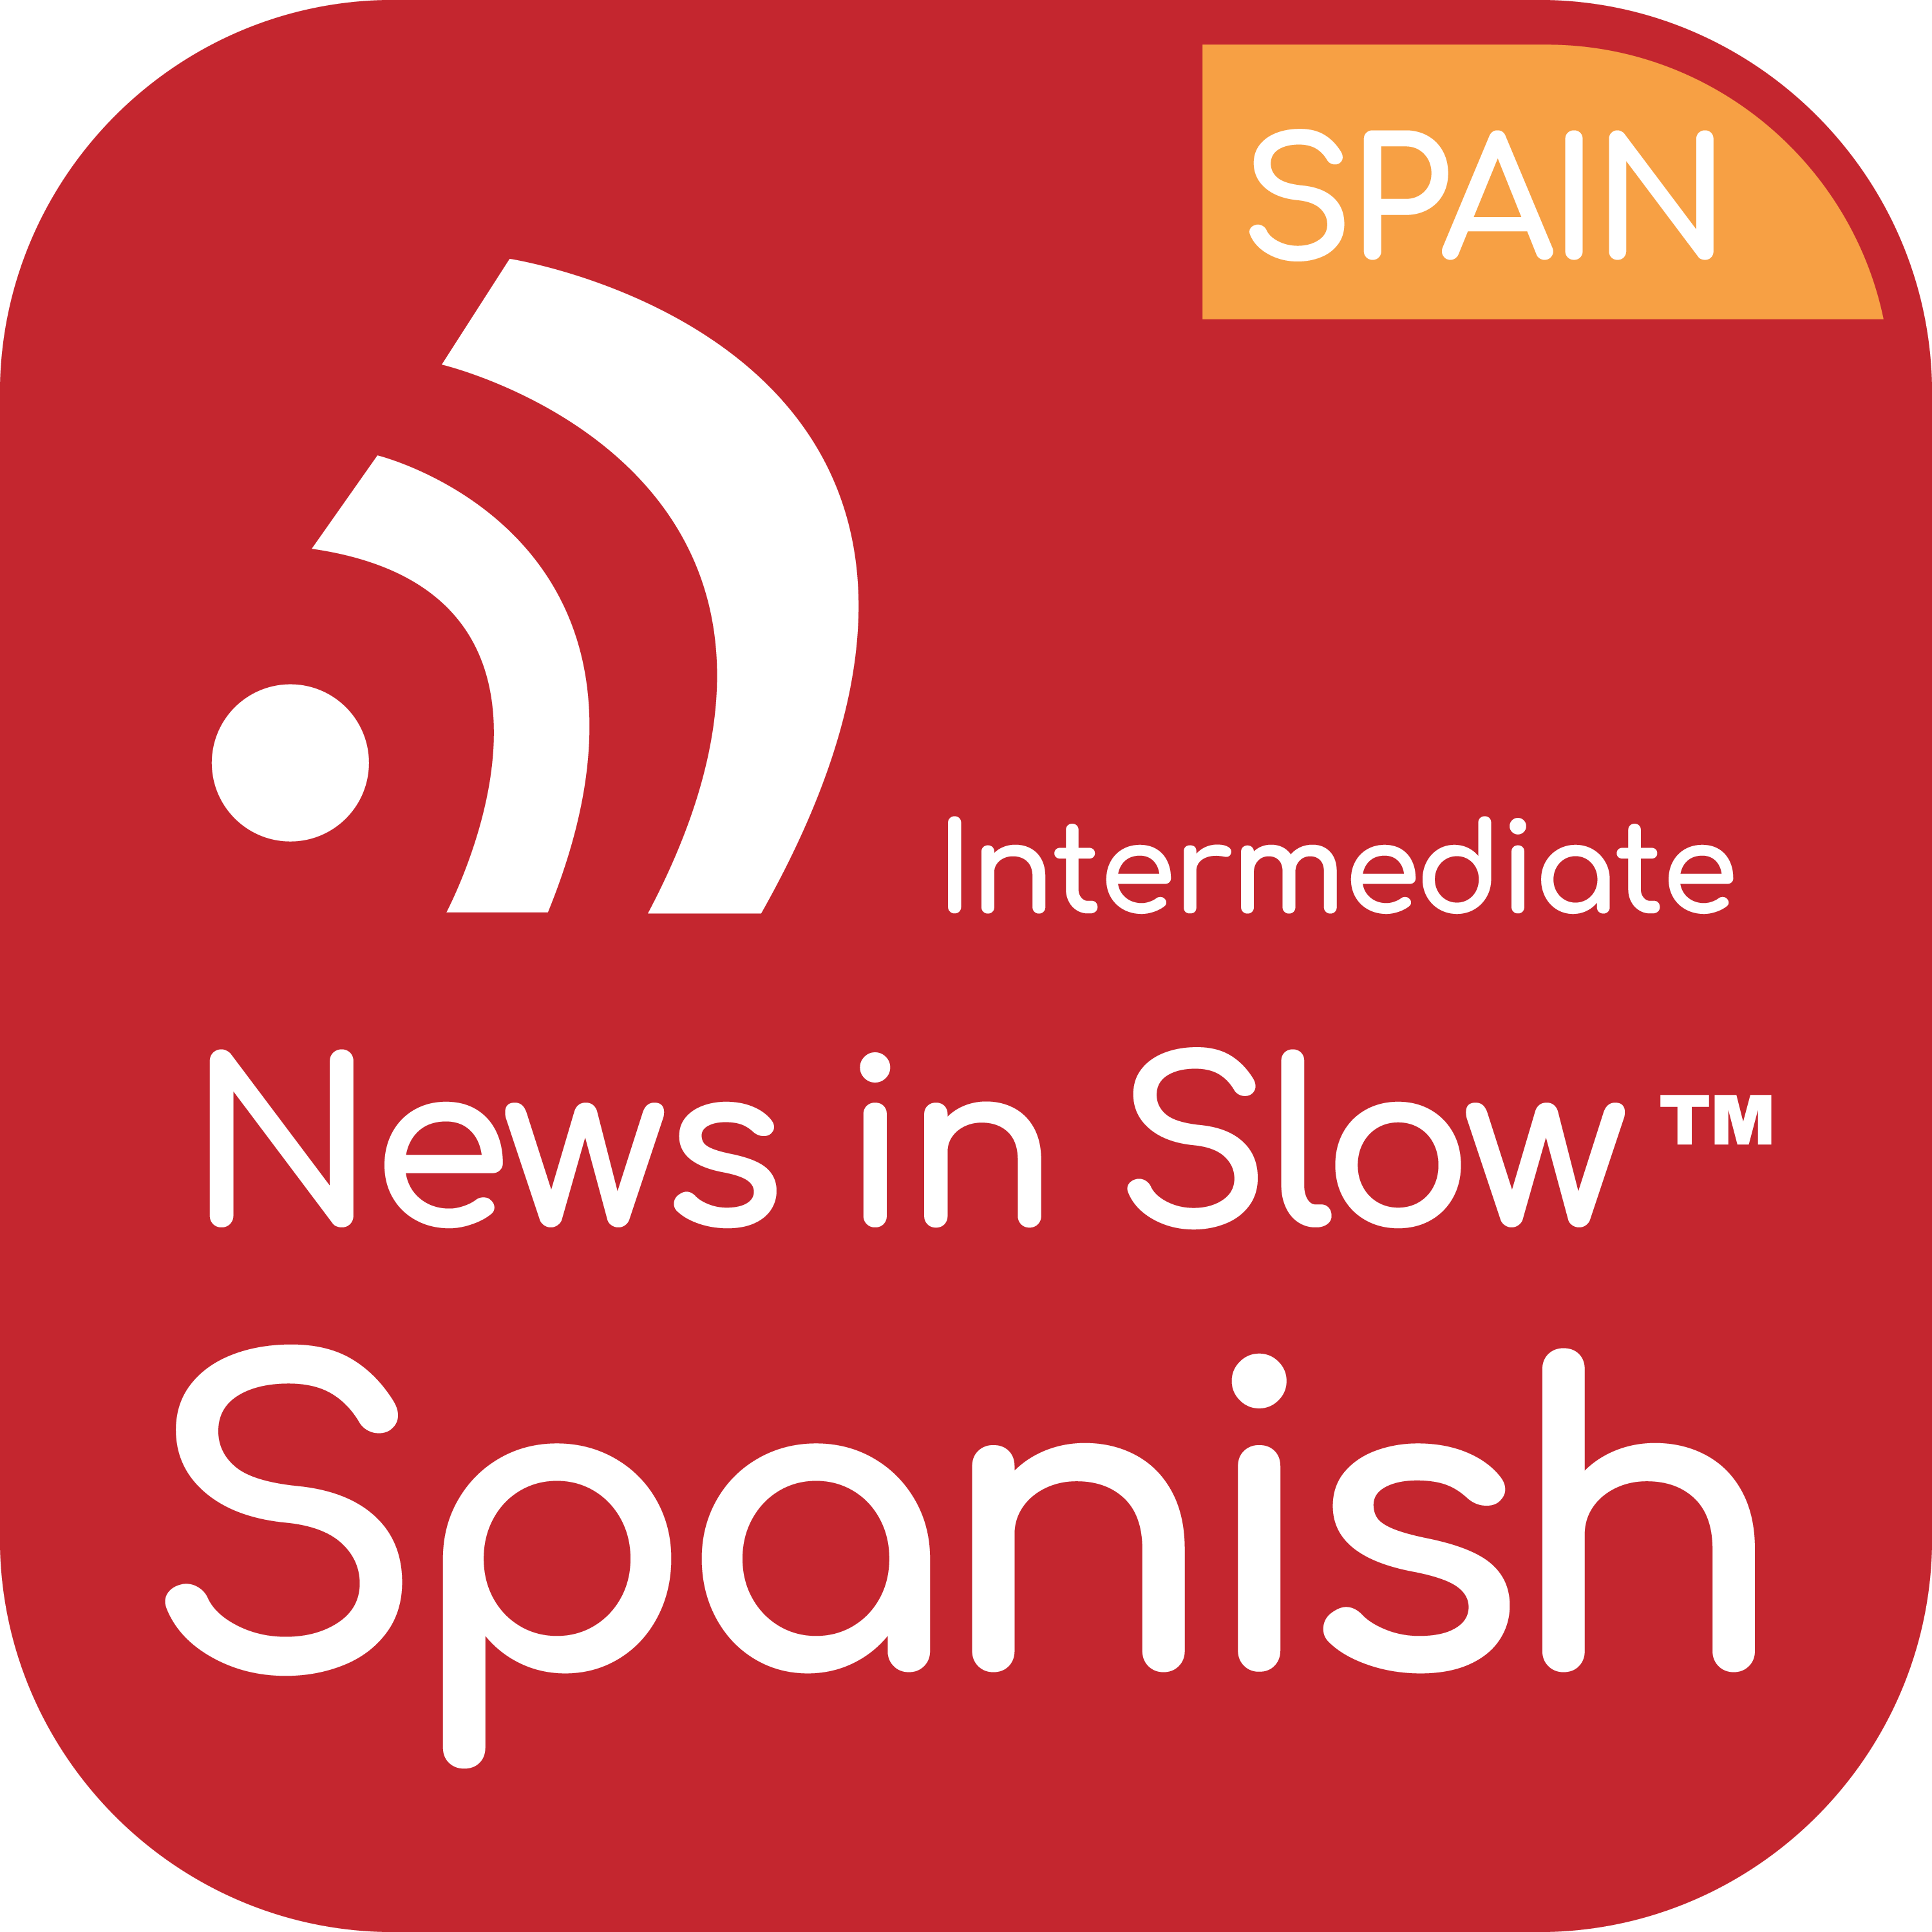 News in Slow Spanish - #640 - Learn Spanish through Current Events